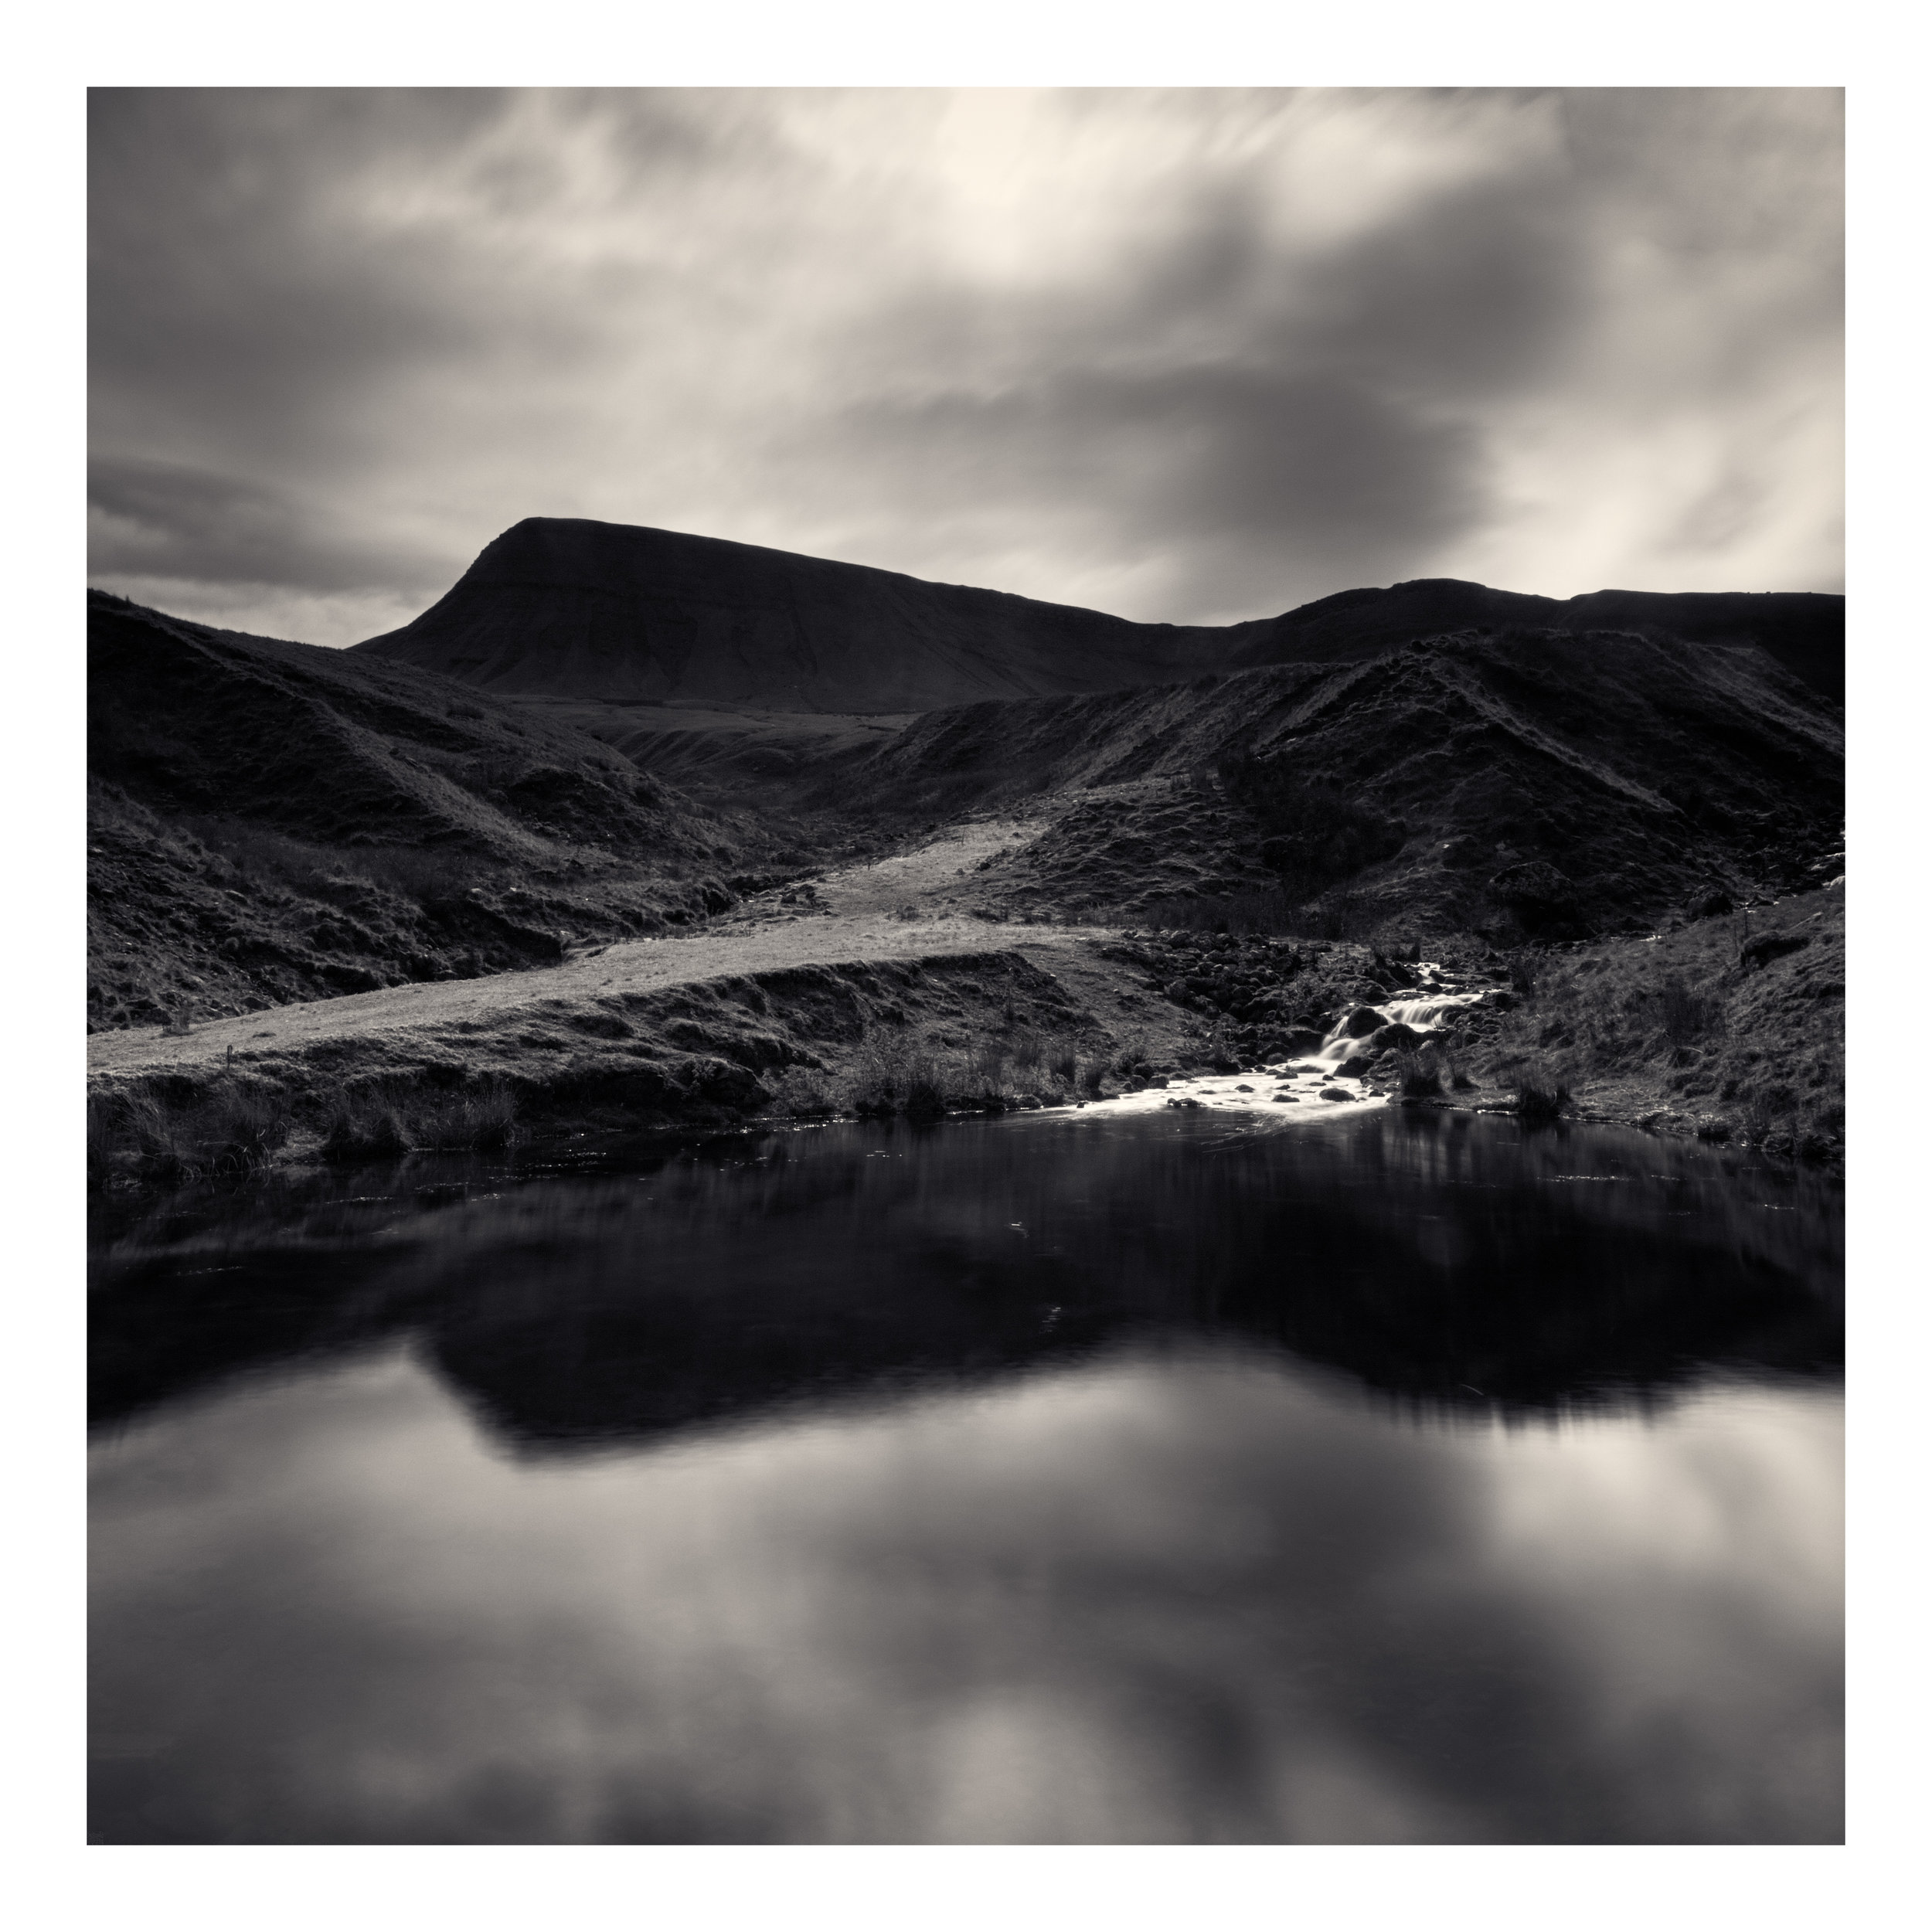 south_wales-brecon_beacons-fullmatte-01.jpg